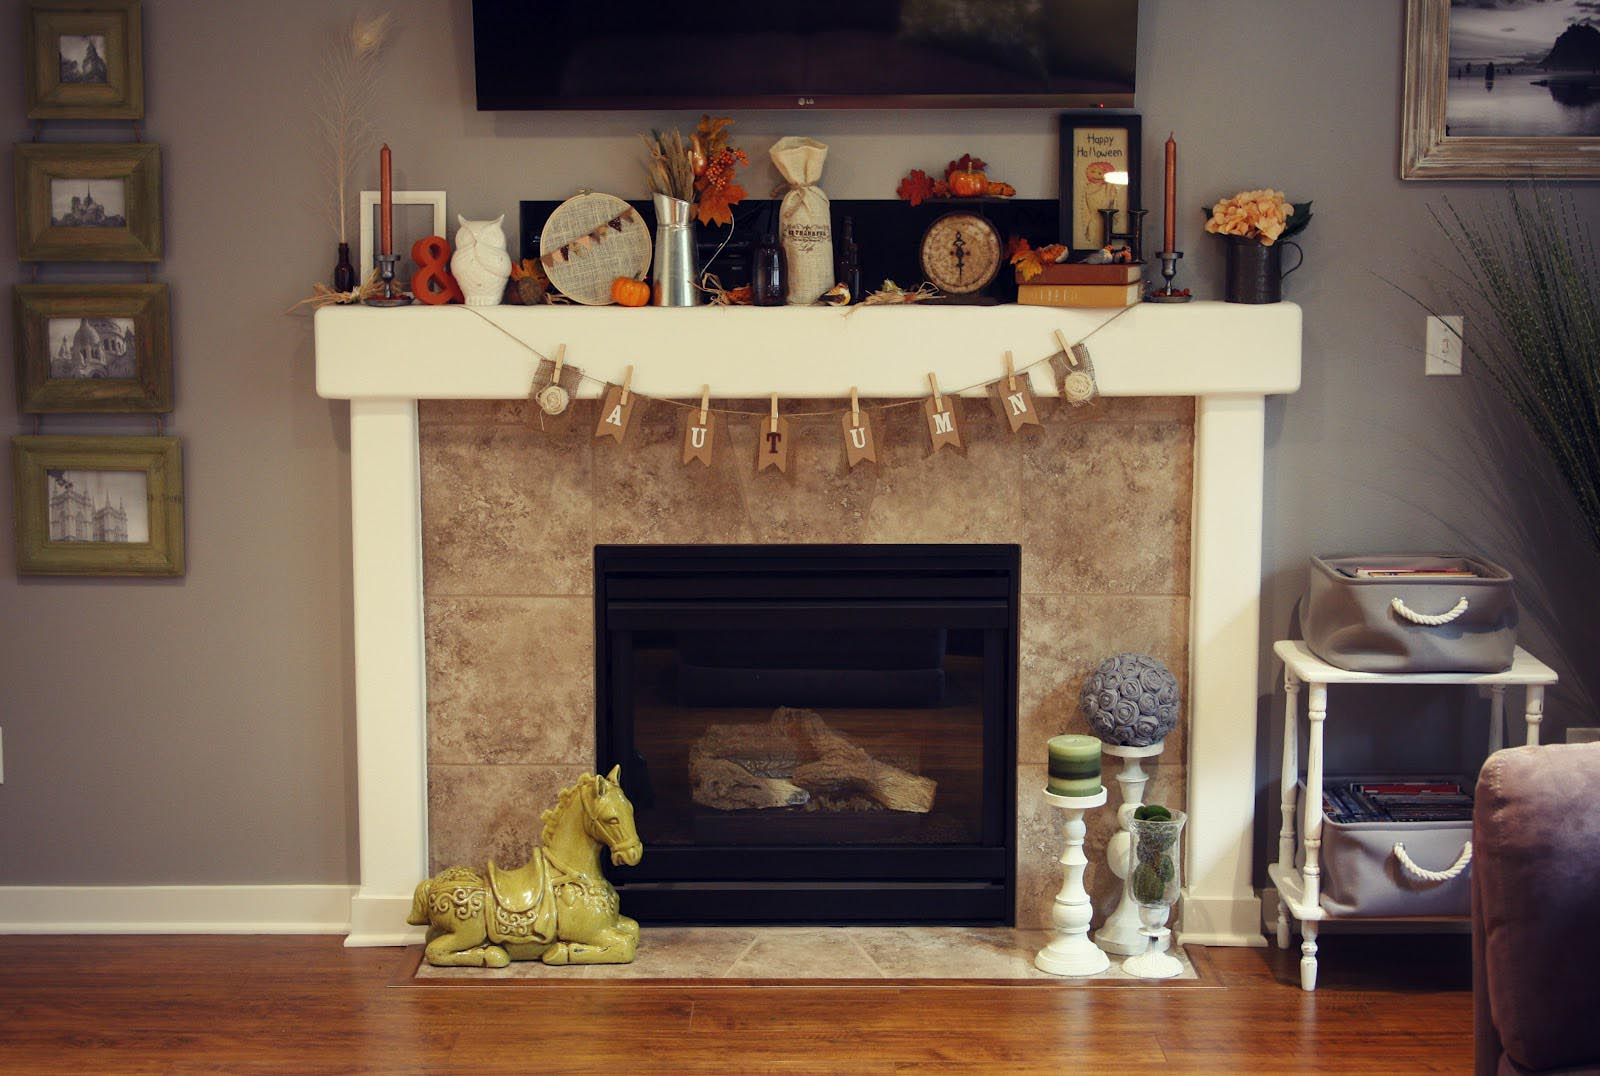 Diy fireplace surround ideas fireplace designs for Wood fireplace surround designs